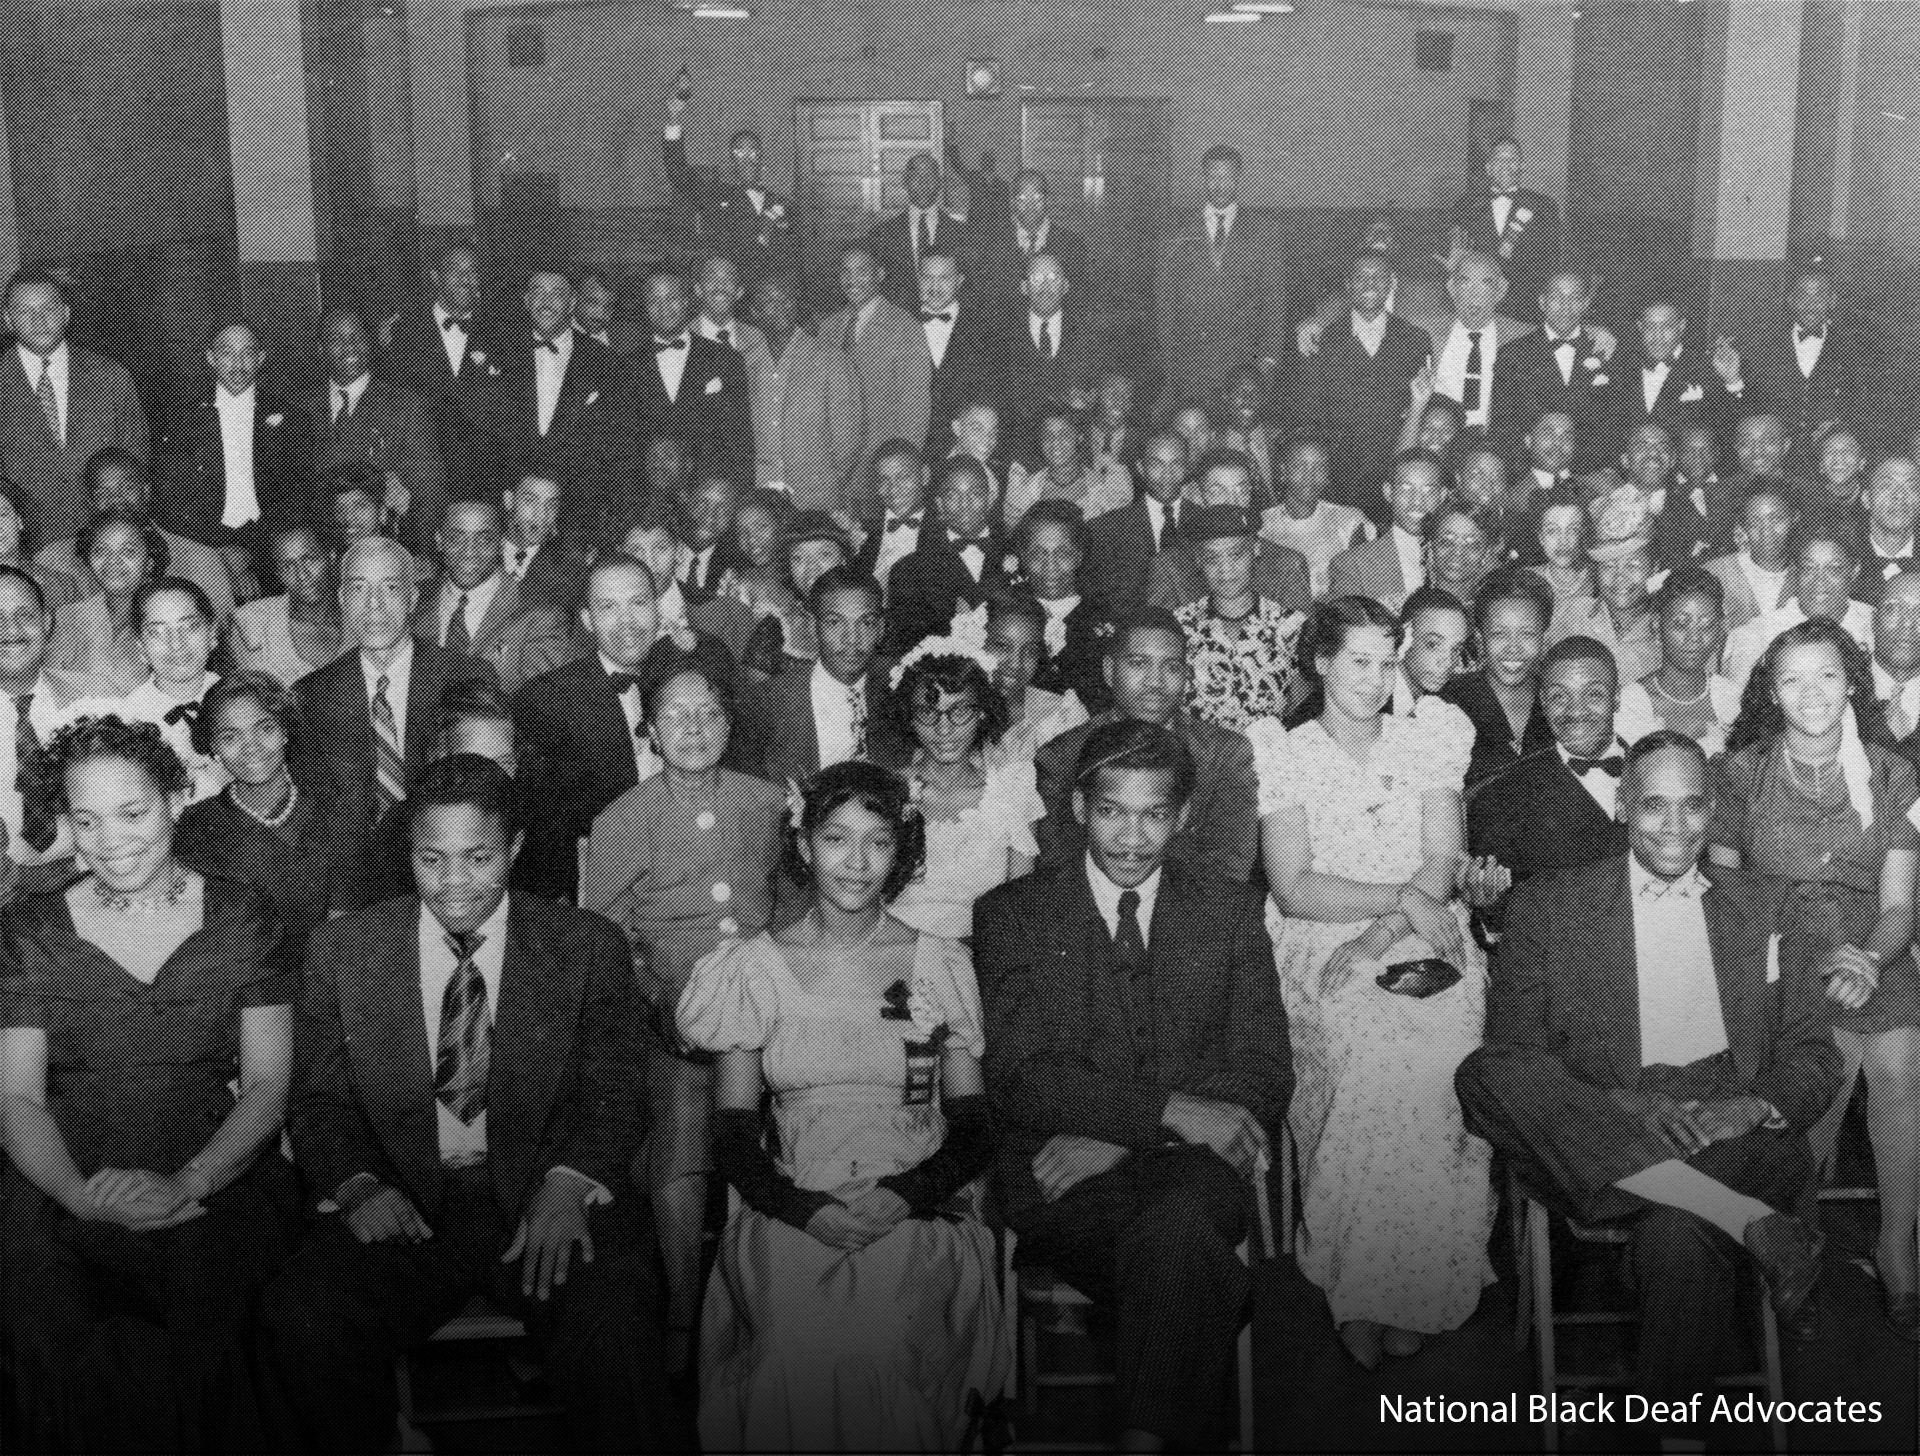 Approximately 100 to 125 Black Deaf people smile pose for a group photo.